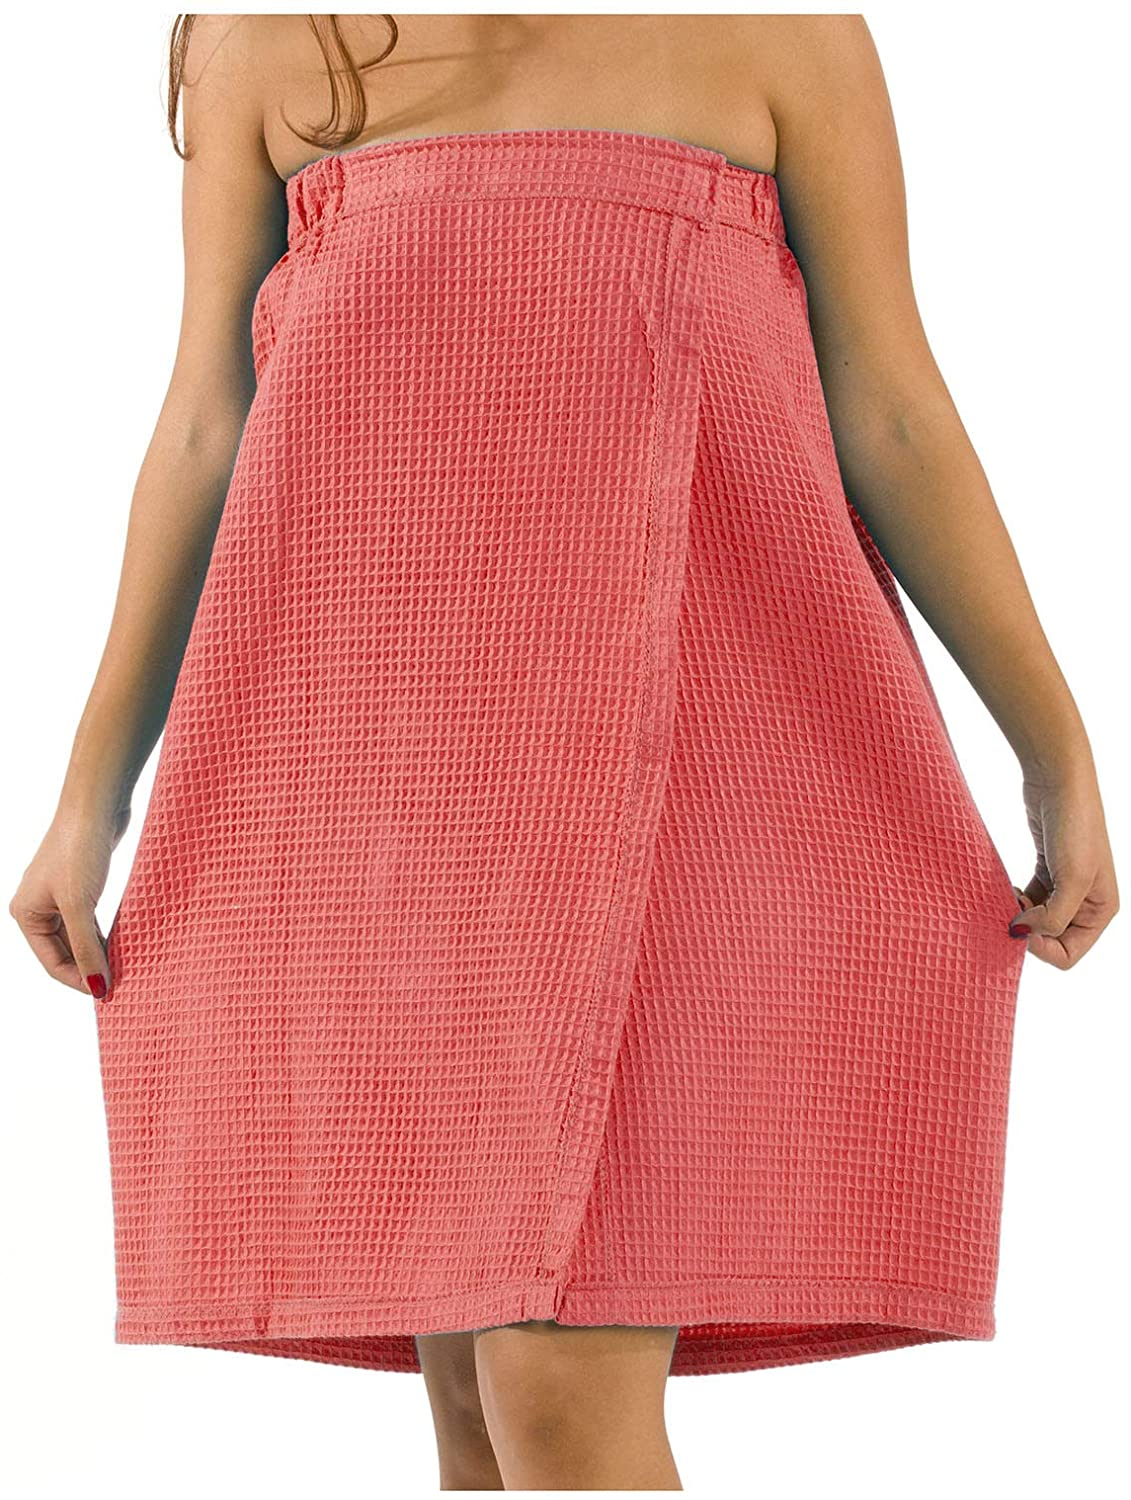 BY LORA Women Waffle Shower Spa Wrap, Waffle Cover up Towel, Coral